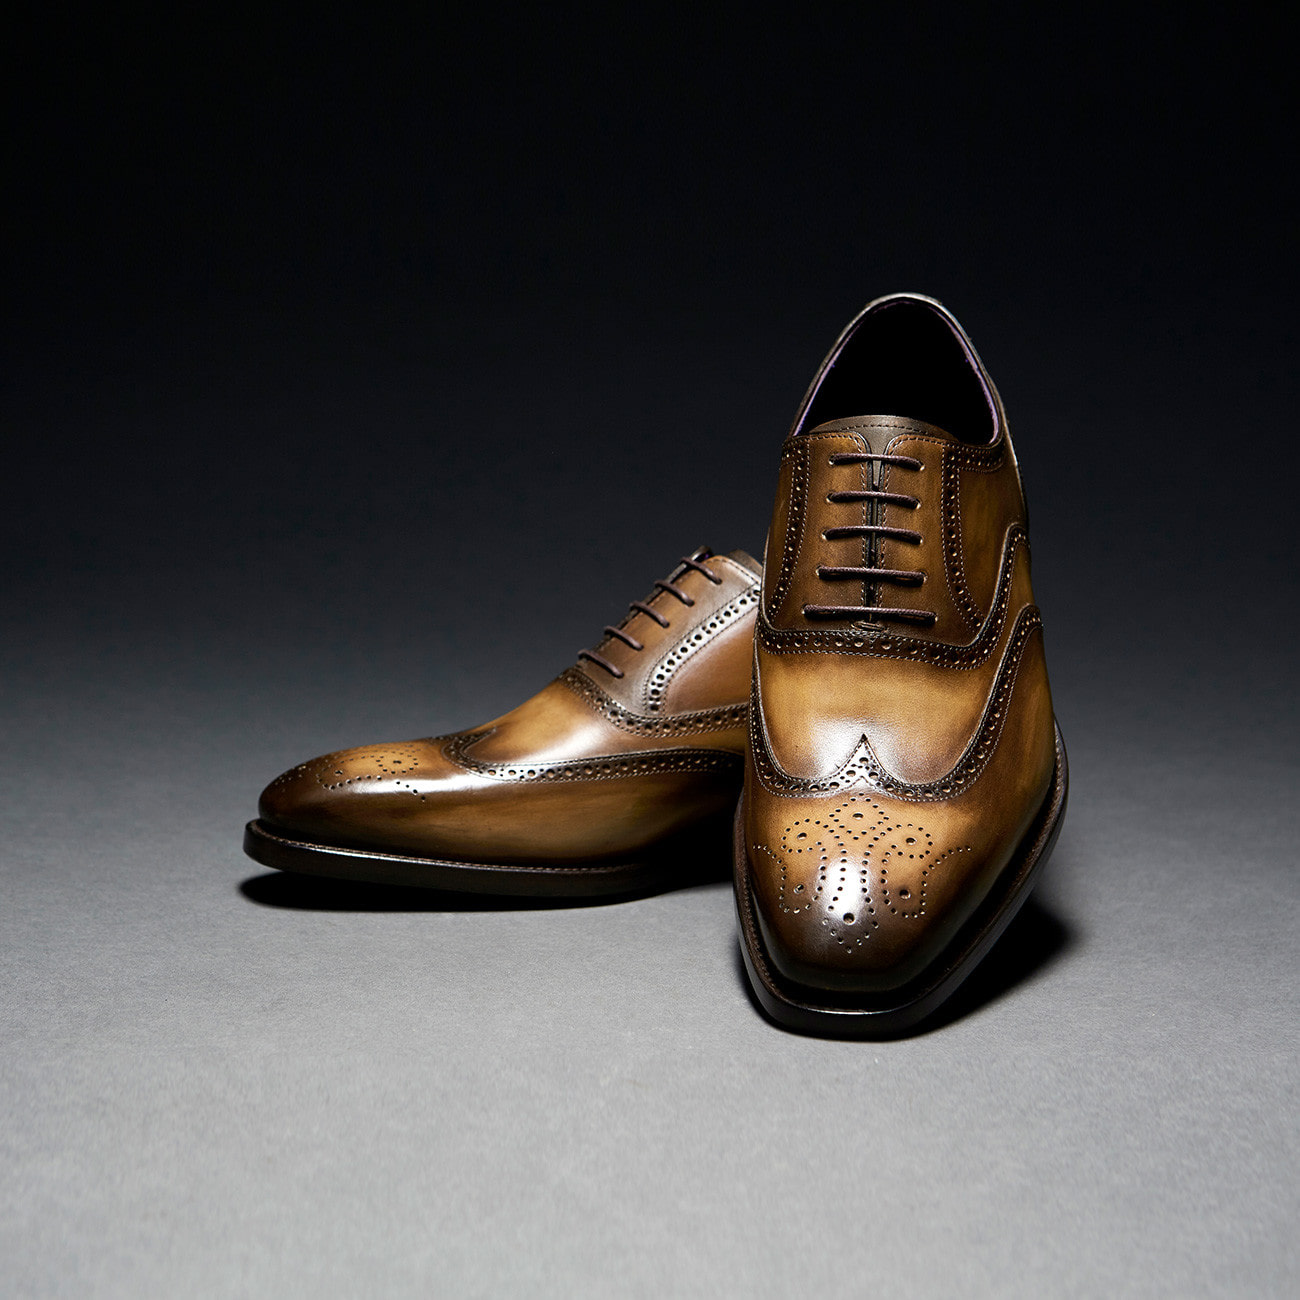 [Custommania X The shuri] PATINA WING TIP OXFORD OFR No.932